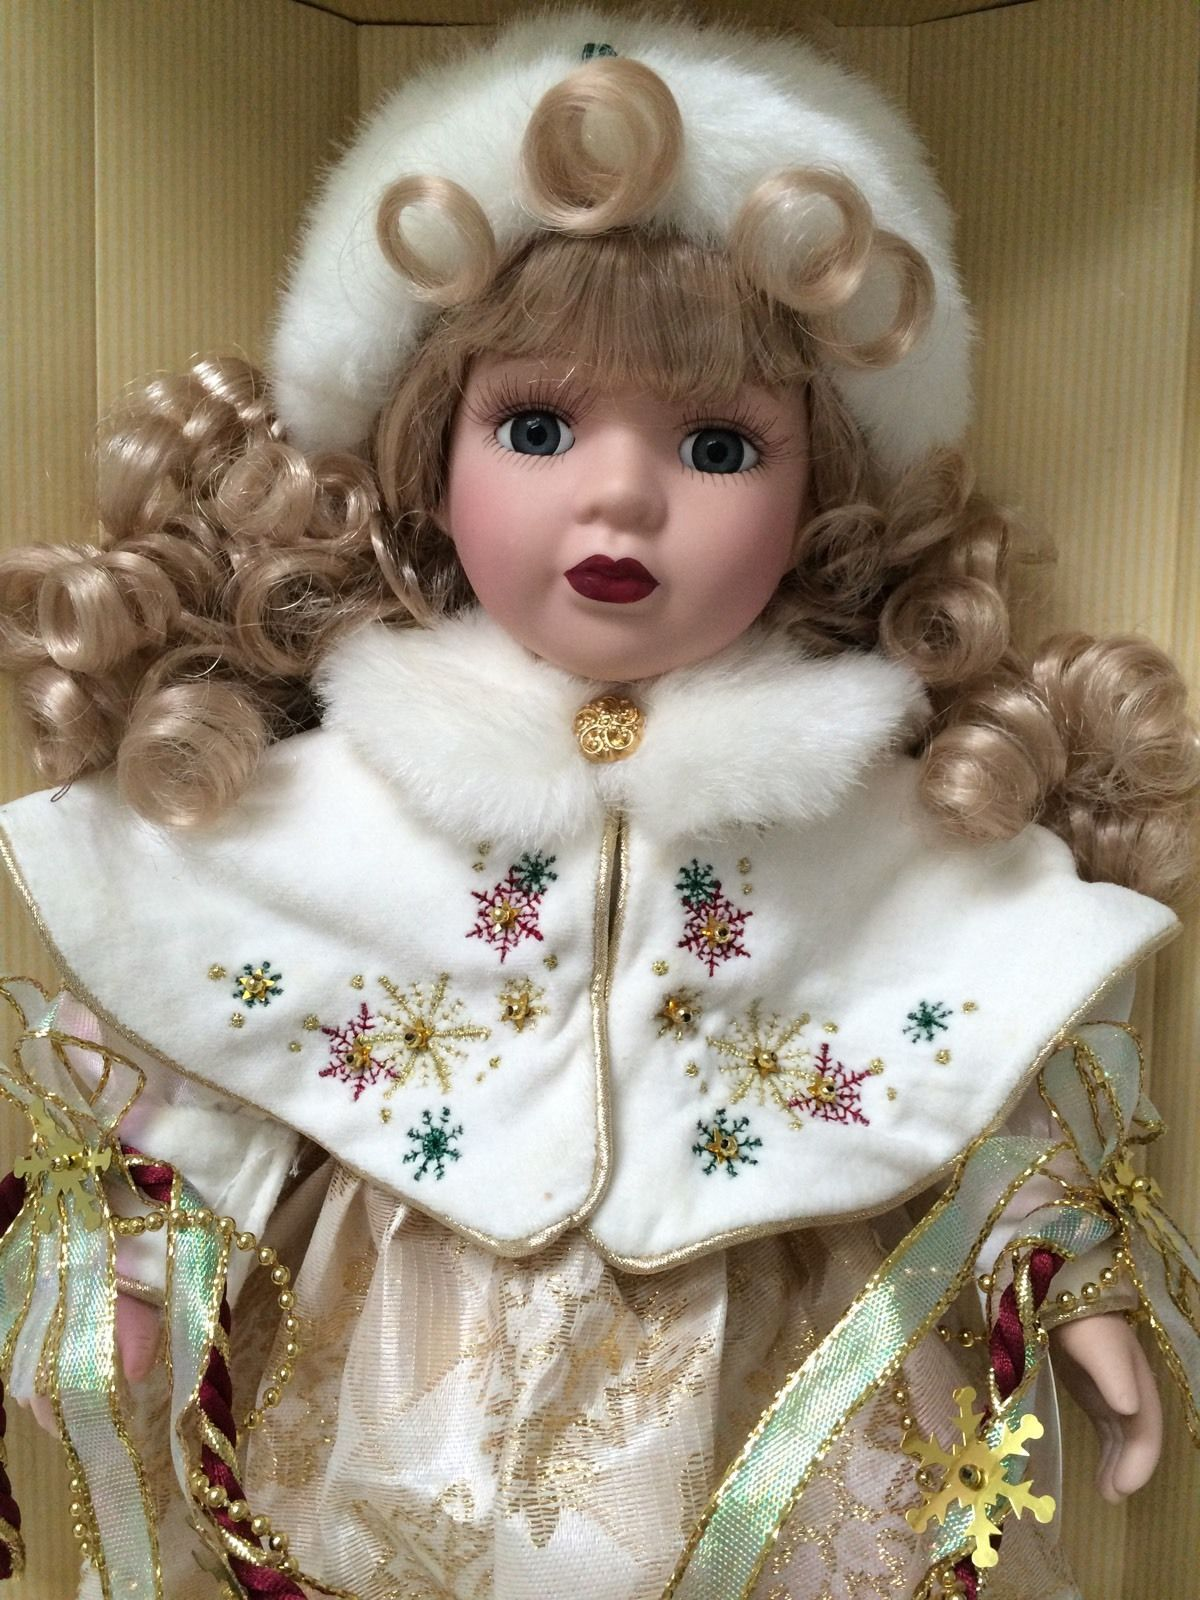 US $19.99 New in Dolls & Bears, Dolls, By Material